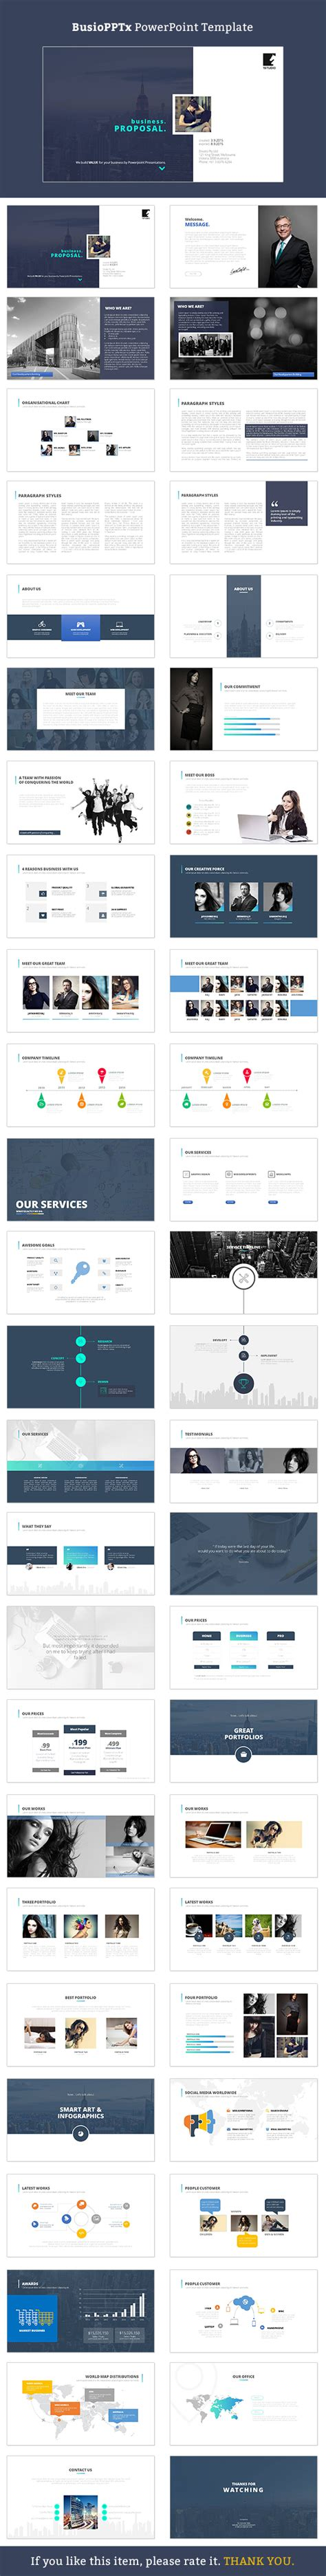 powerpoint templates pack mega ppt pack by graphix shiv graphicriver